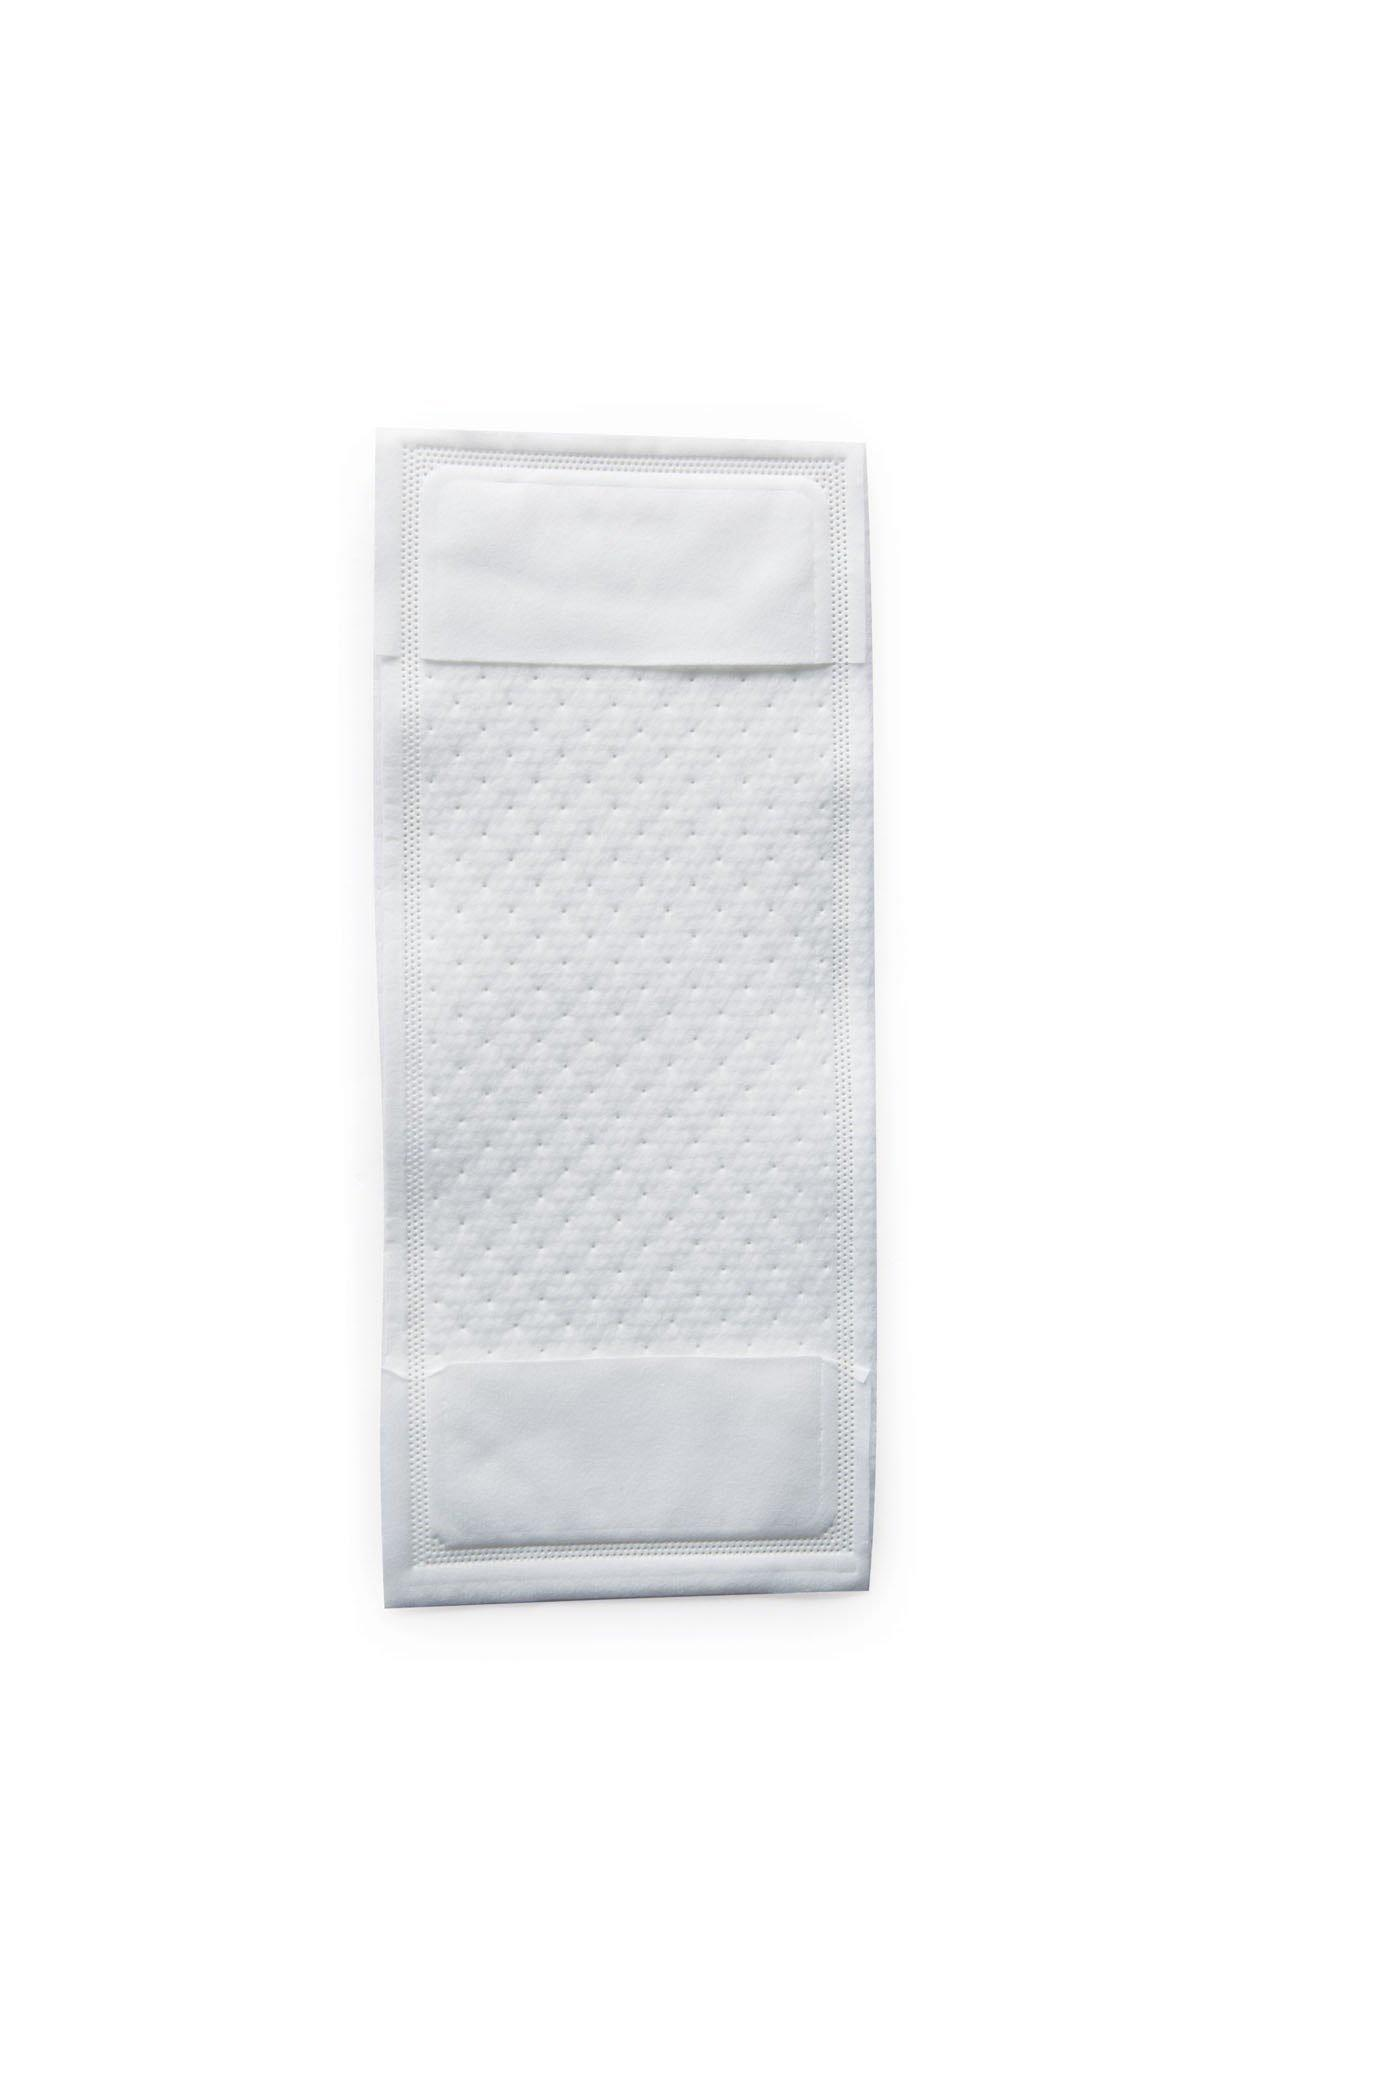 Disposable SWIPES Pads for Spray+Mop (12 count)3